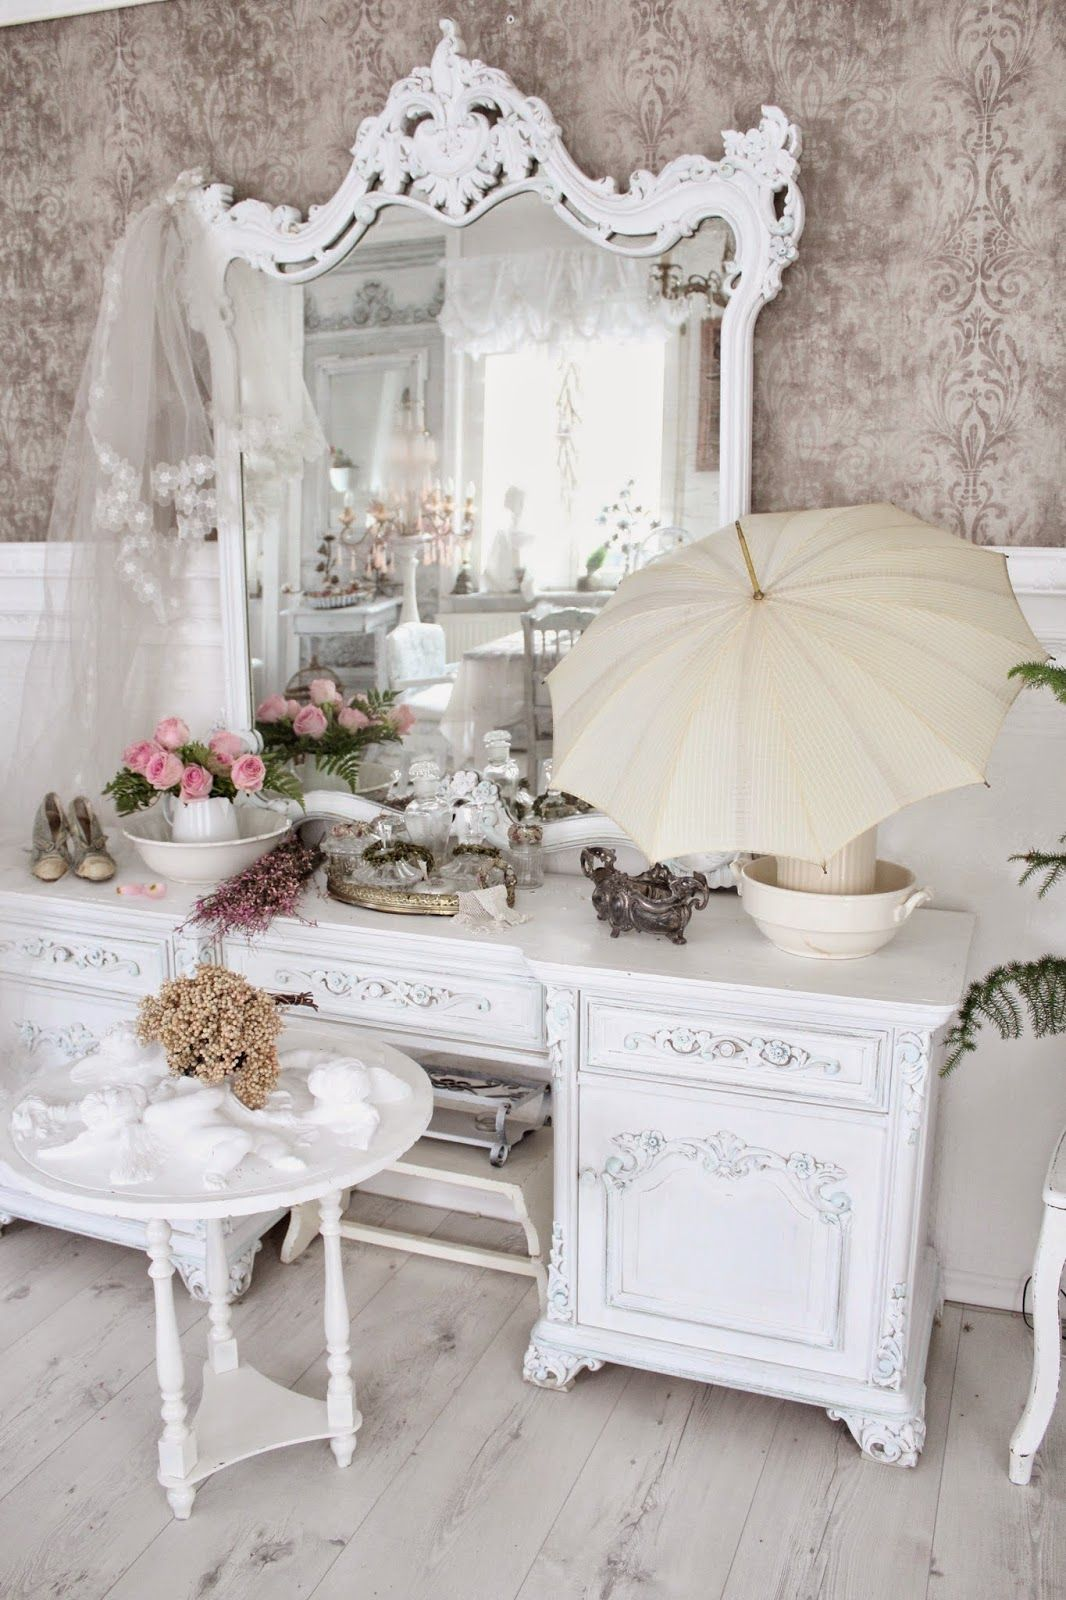 Neues schlafzimmer interieur shabby chic  more of like  pinterest  shabby möbel shabby und